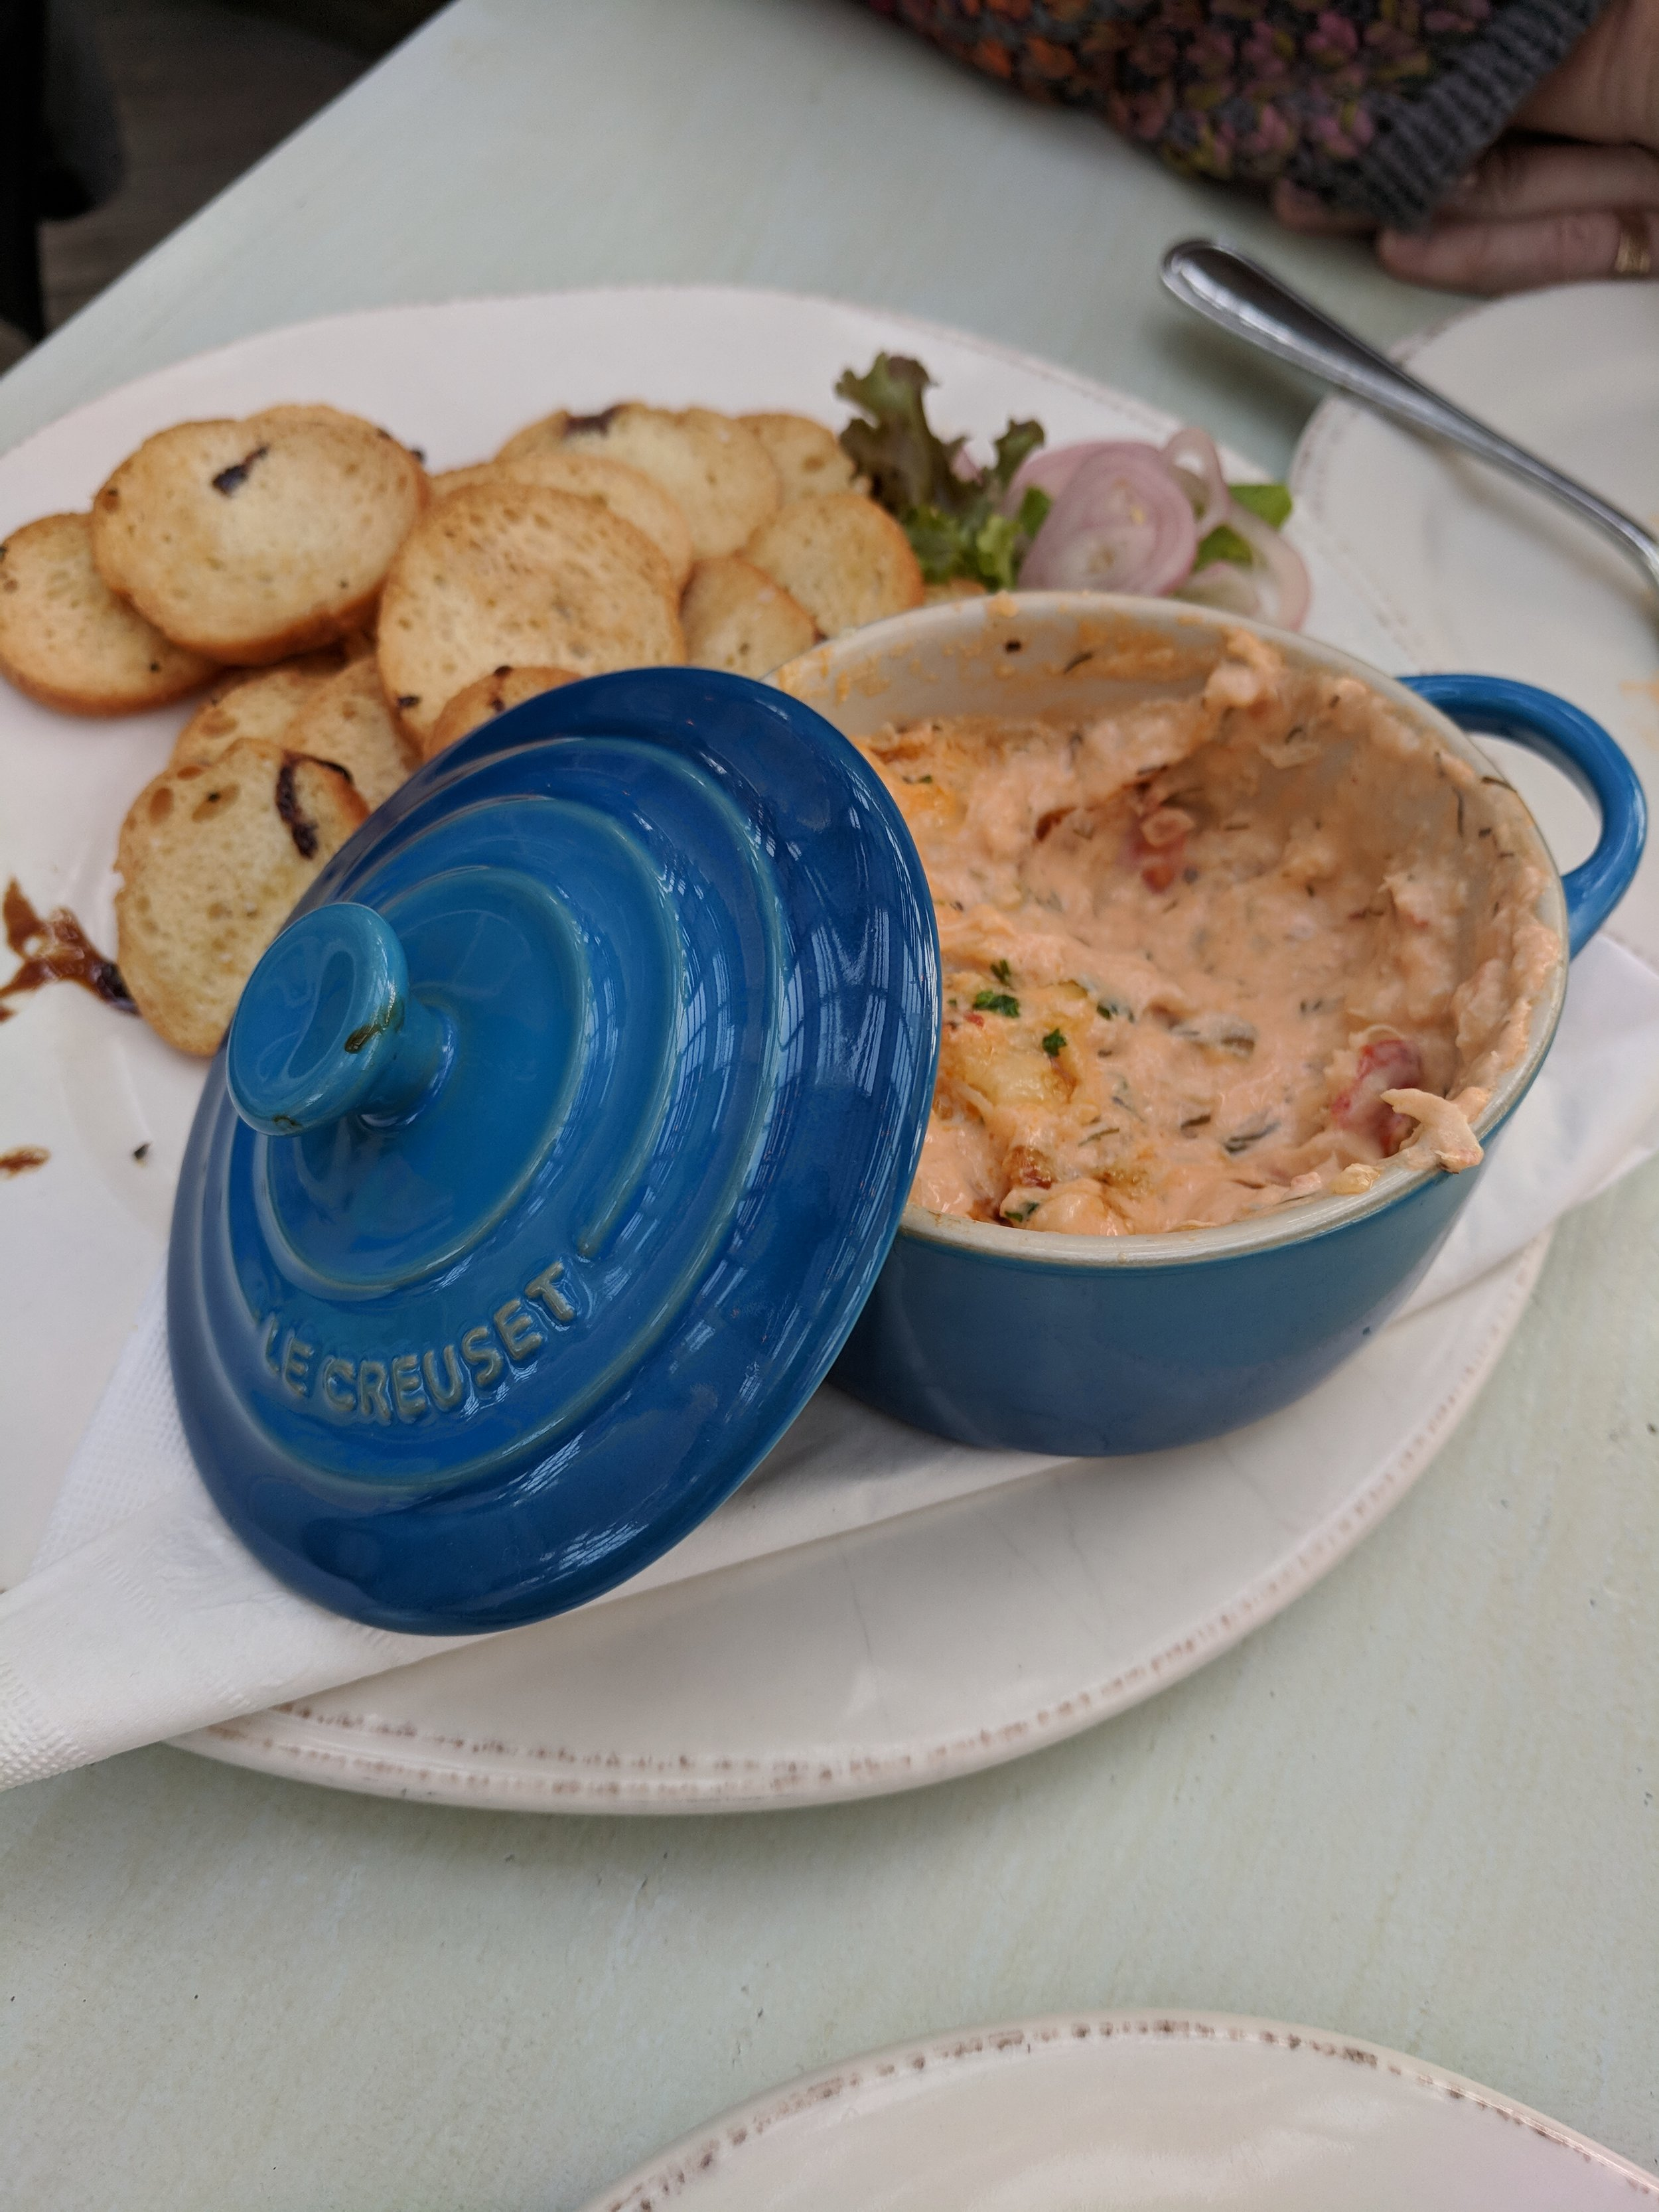 We shared the Lobster dip